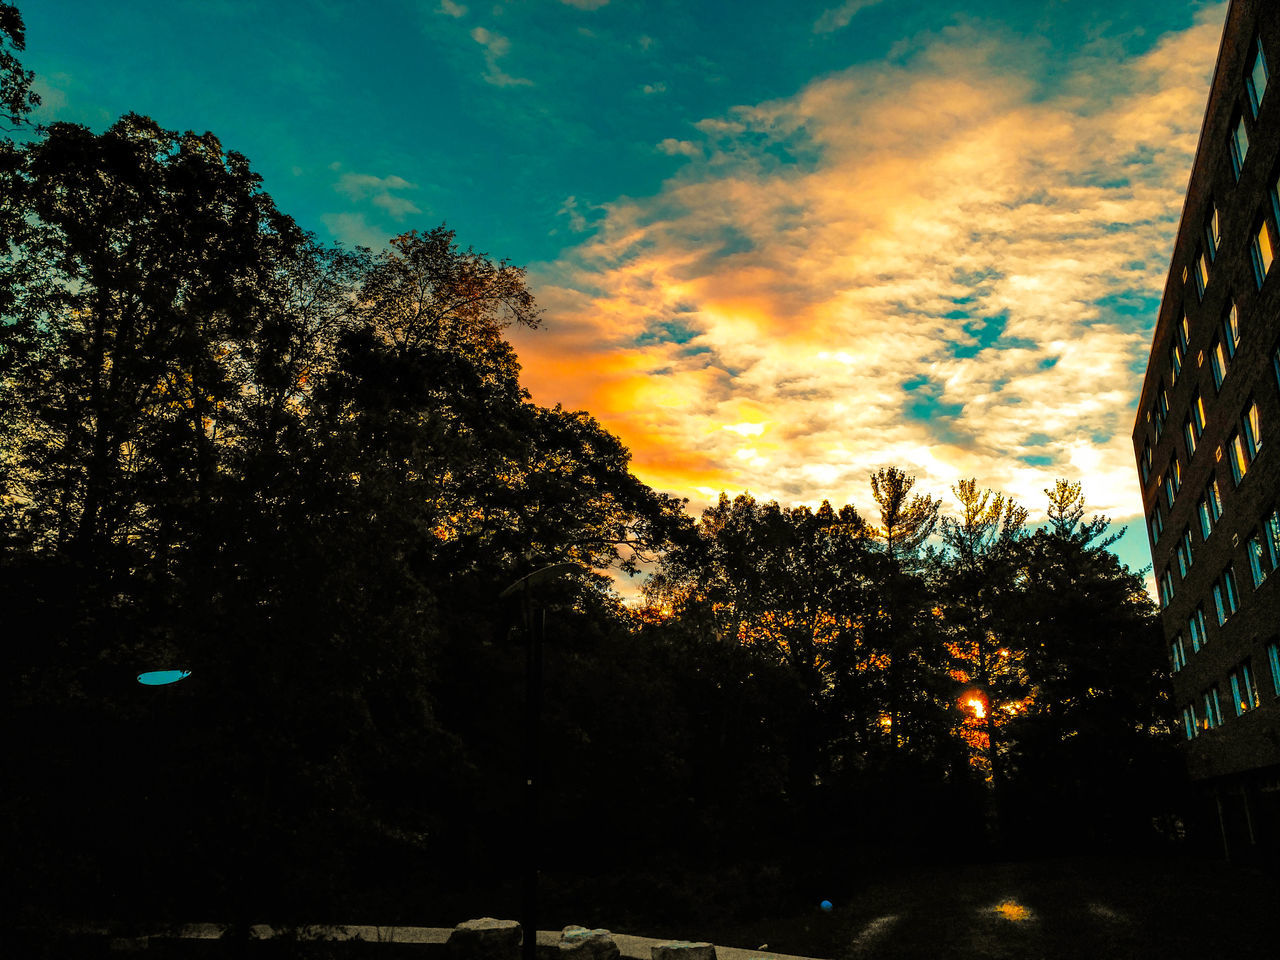 tree, sky, sunset, cloud - sky, silhouette, nature, beauty in nature, scenics, tranquil scene, no people, growth, tranquility, outdoors, low angle view, day